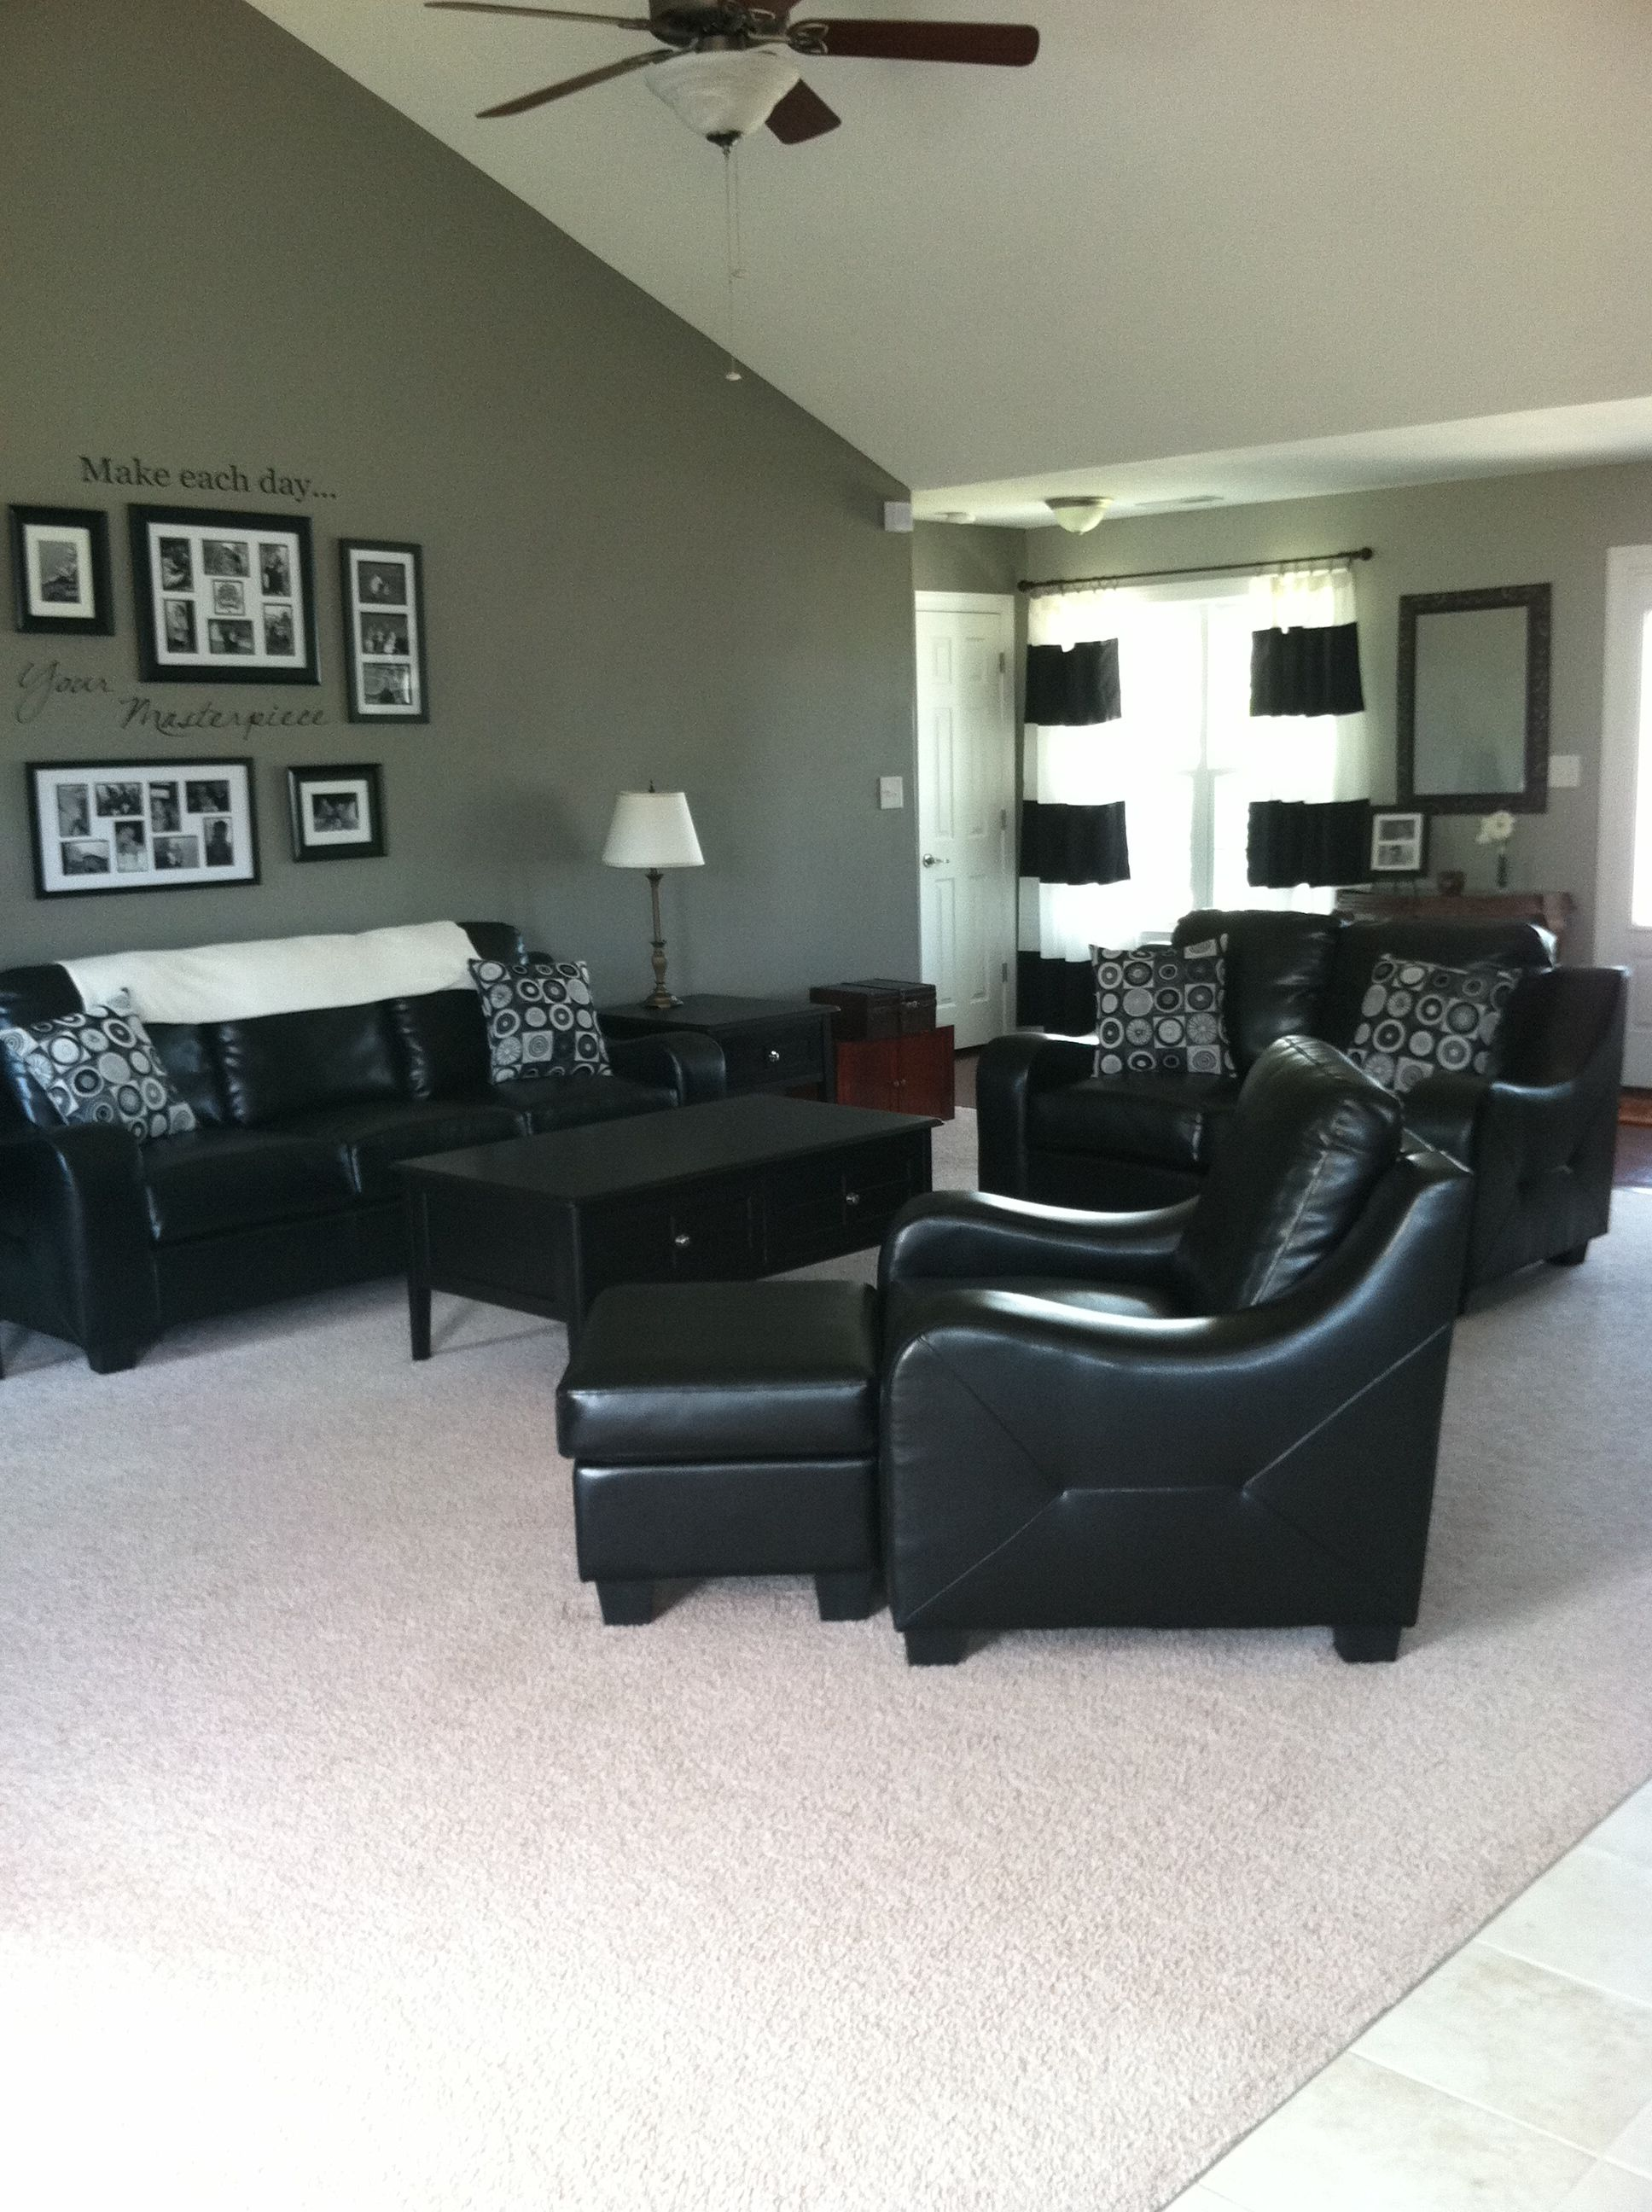 My New LivingroomBehr Paint Color Elephant Skin Love The Black And White Contrast